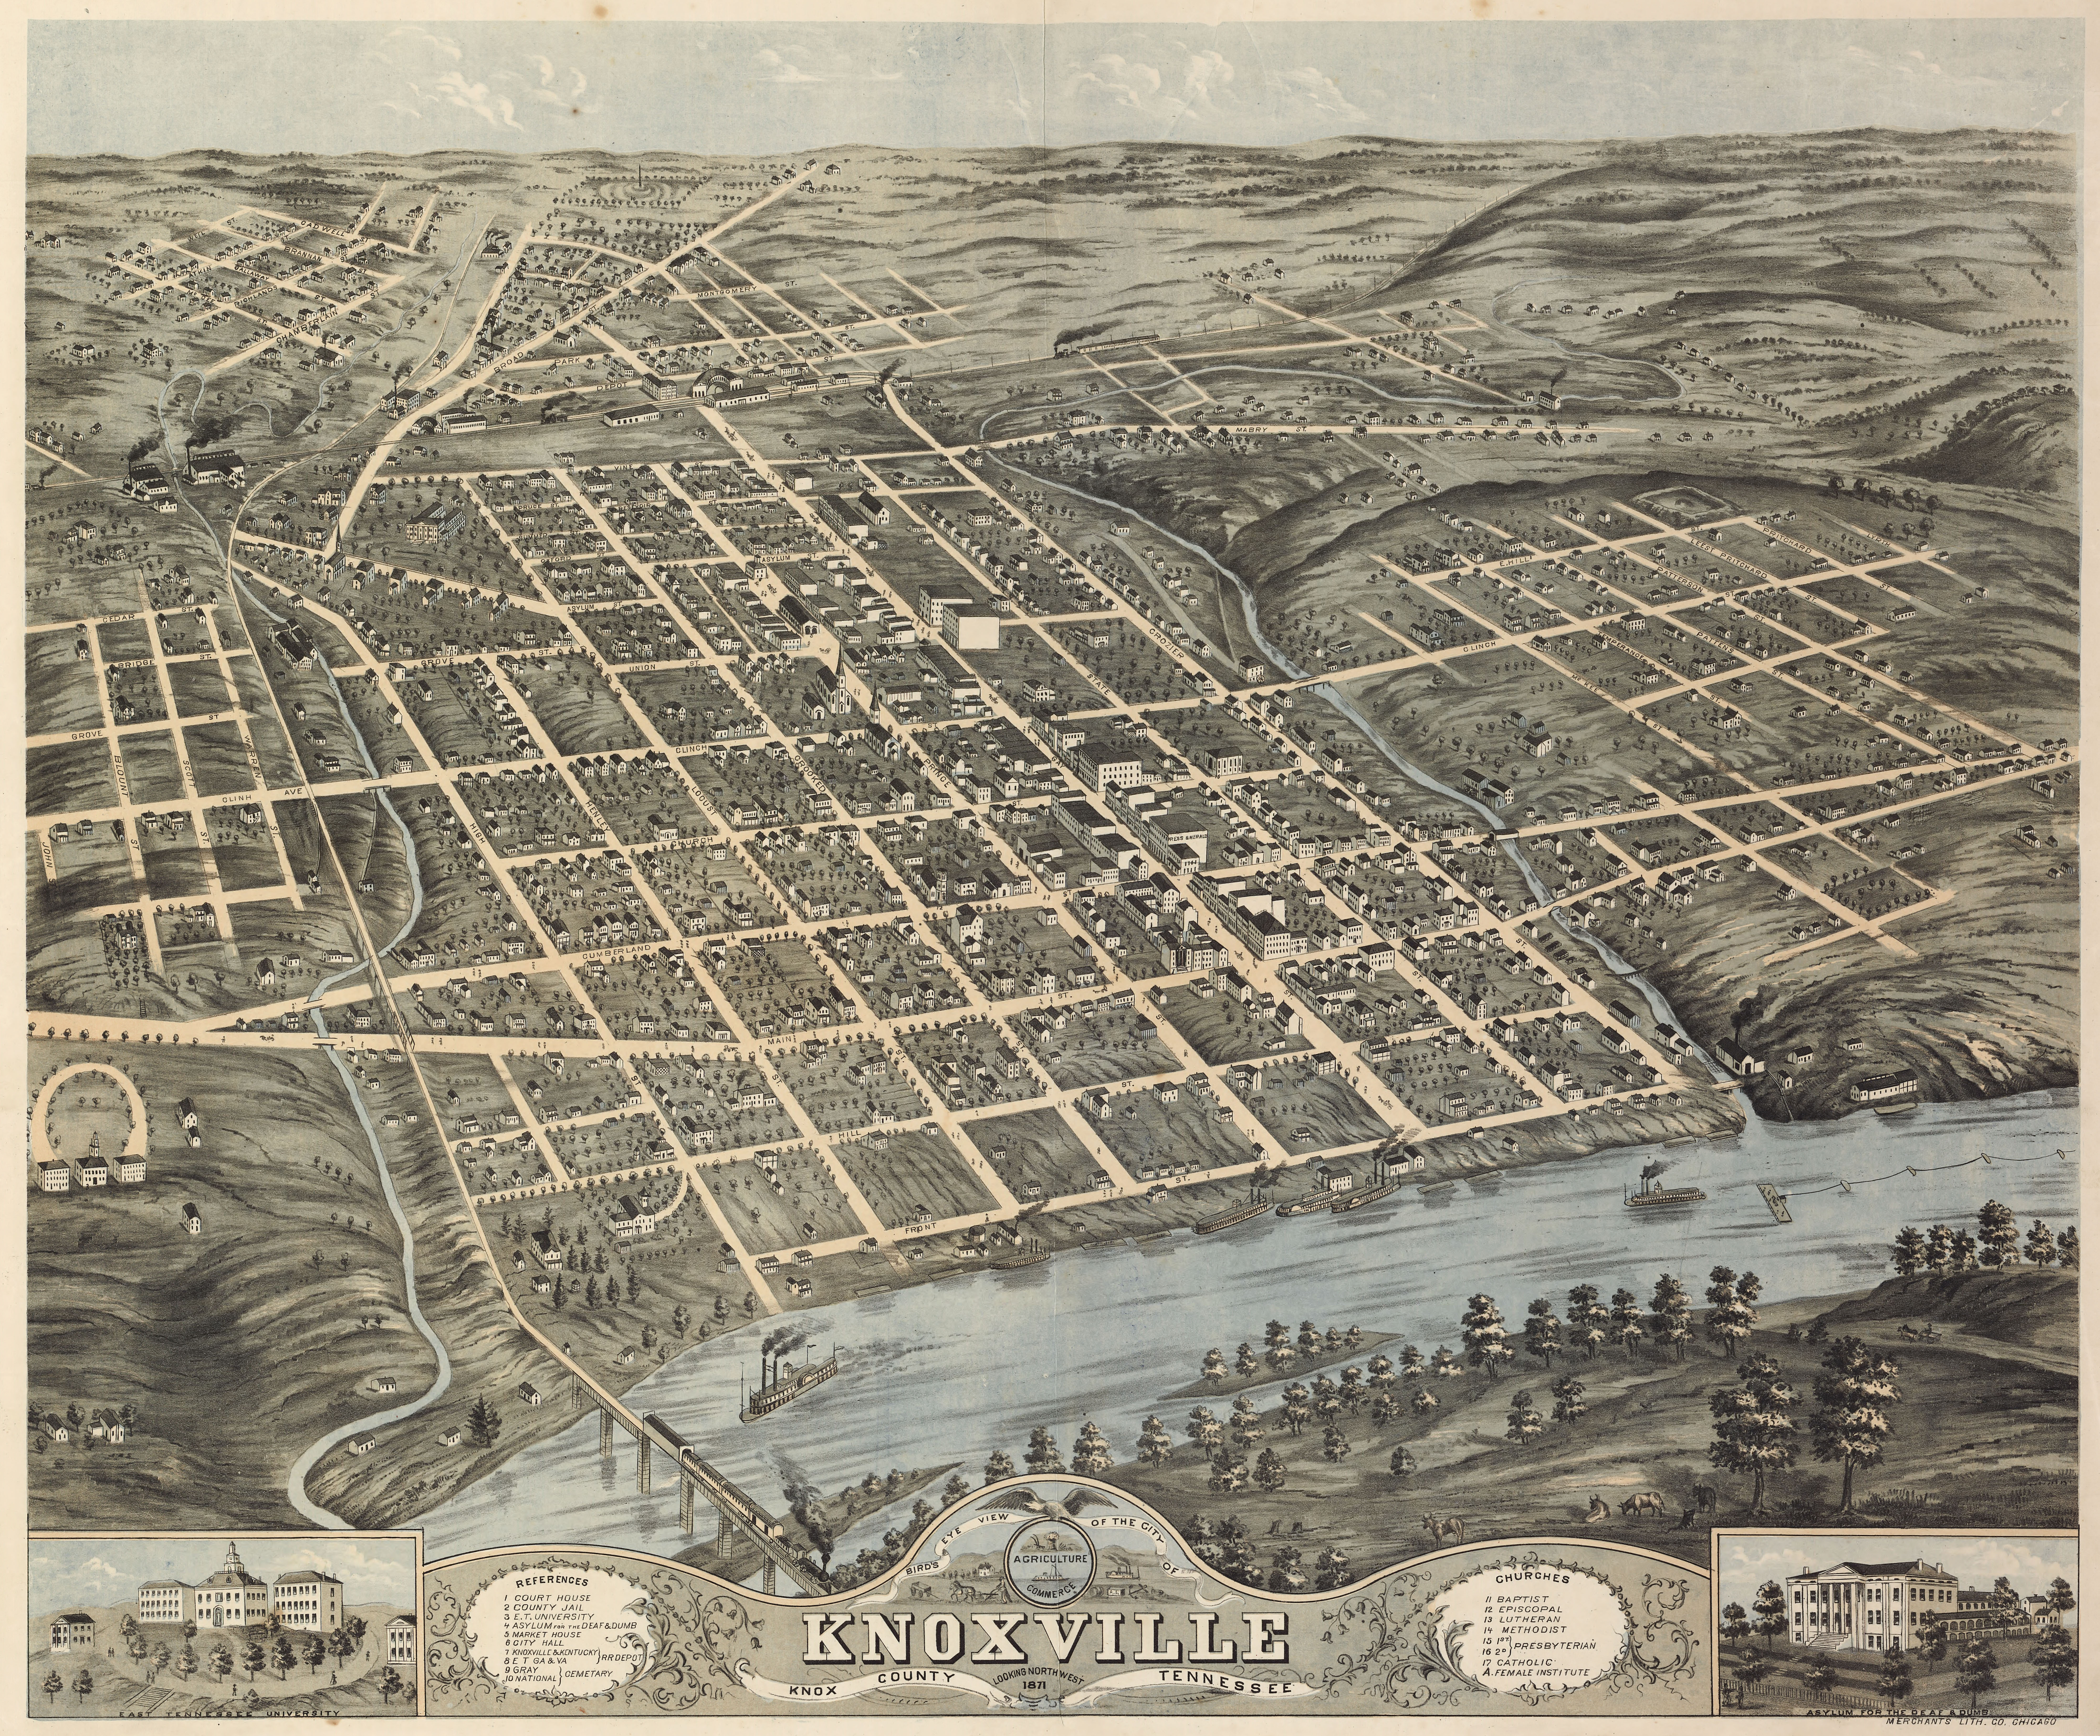 Rugers map of knoxville tennessee 1871 dwnld full size sciox Gallery